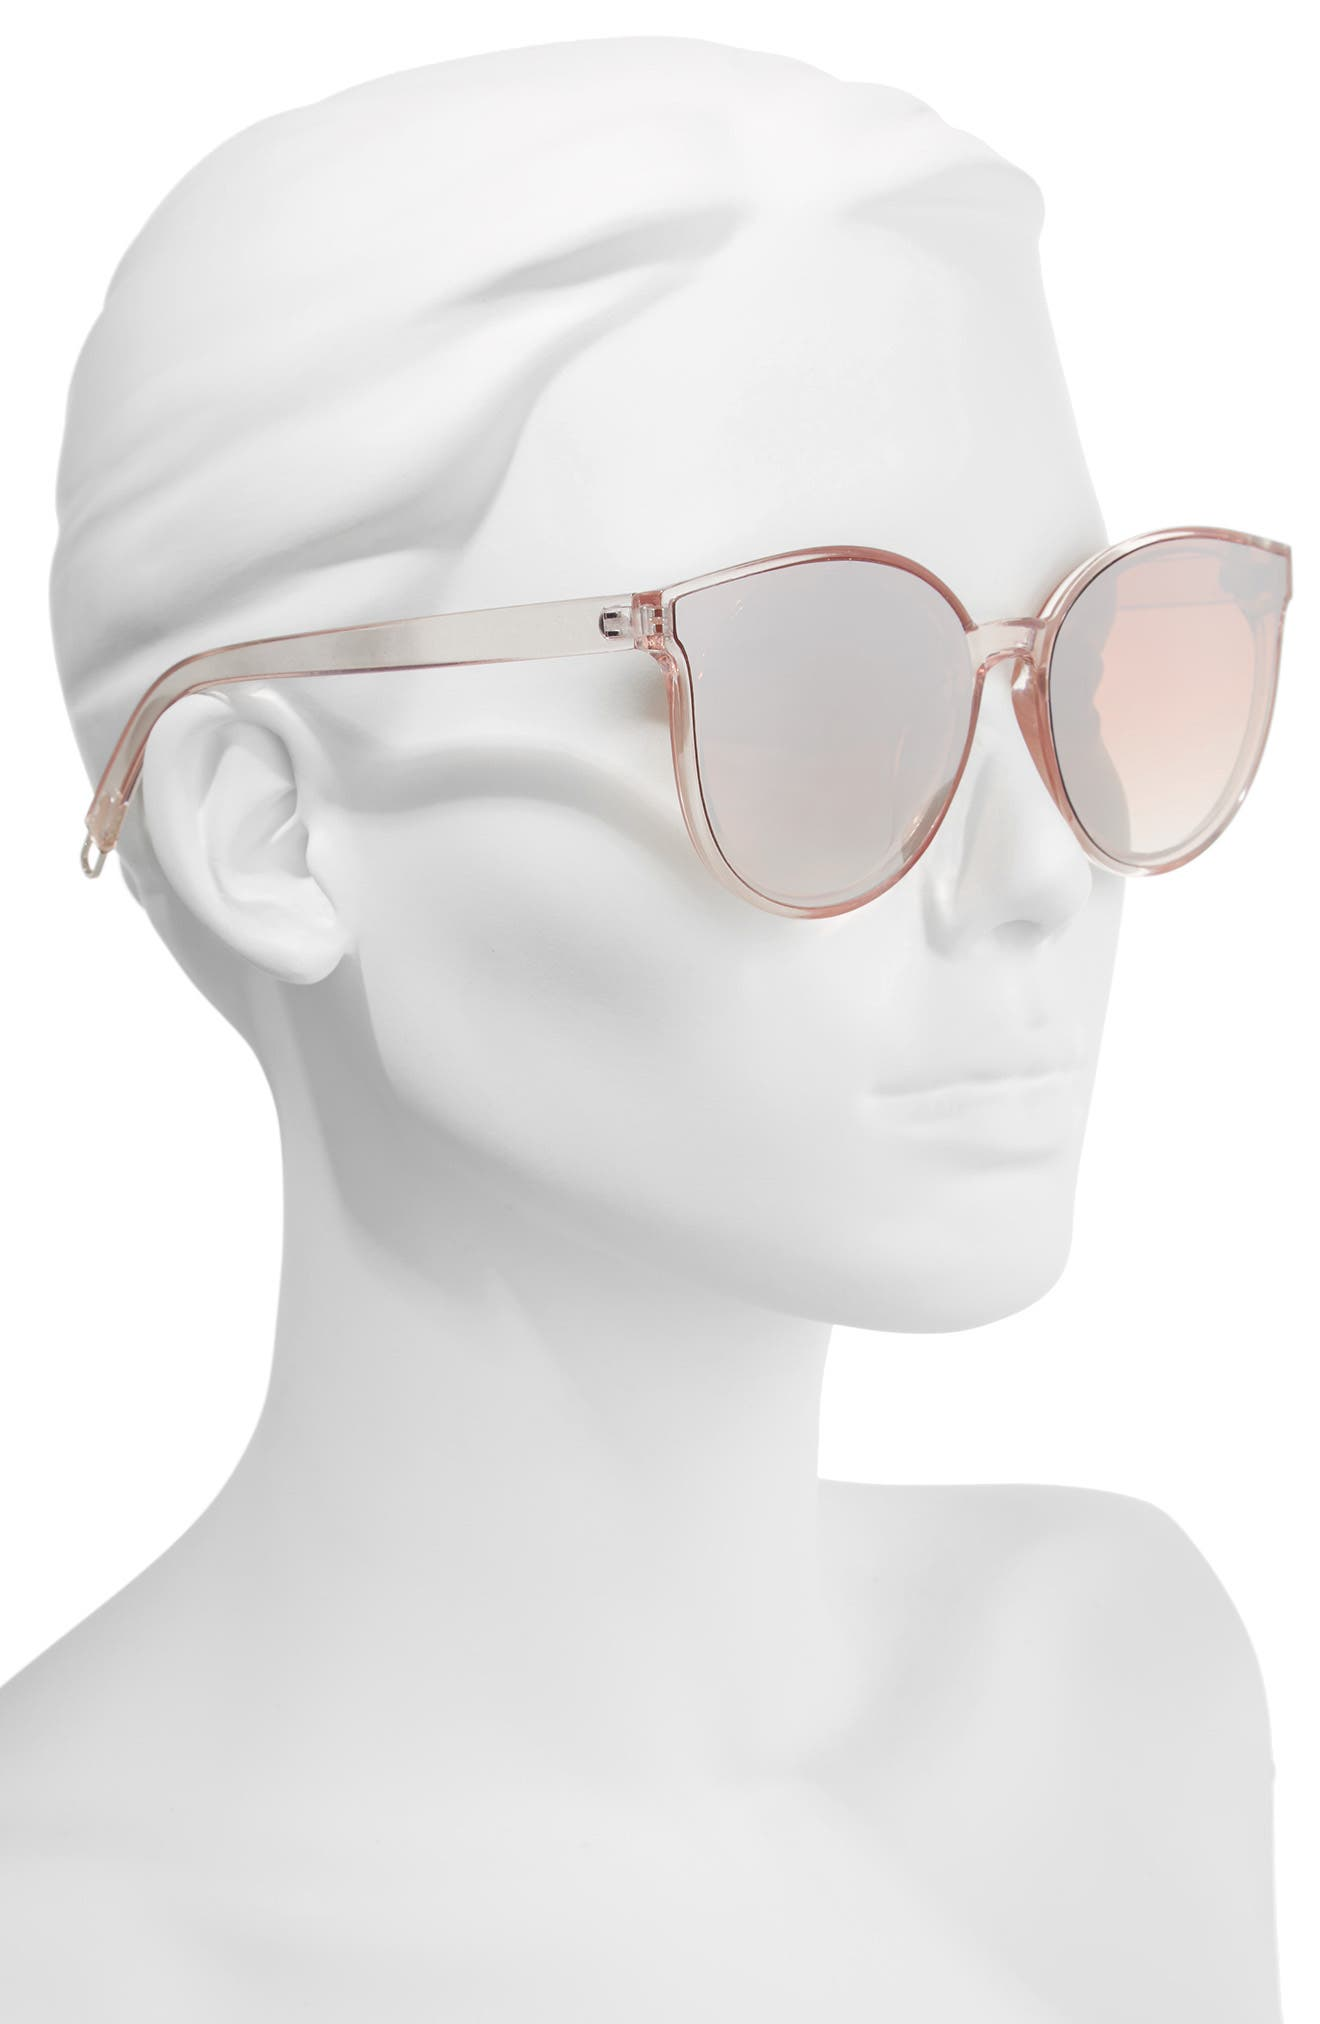 59mm Metal Tip Round Sunglasses,                             Alternate thumbnail 2, color,                             Clear/ Pink